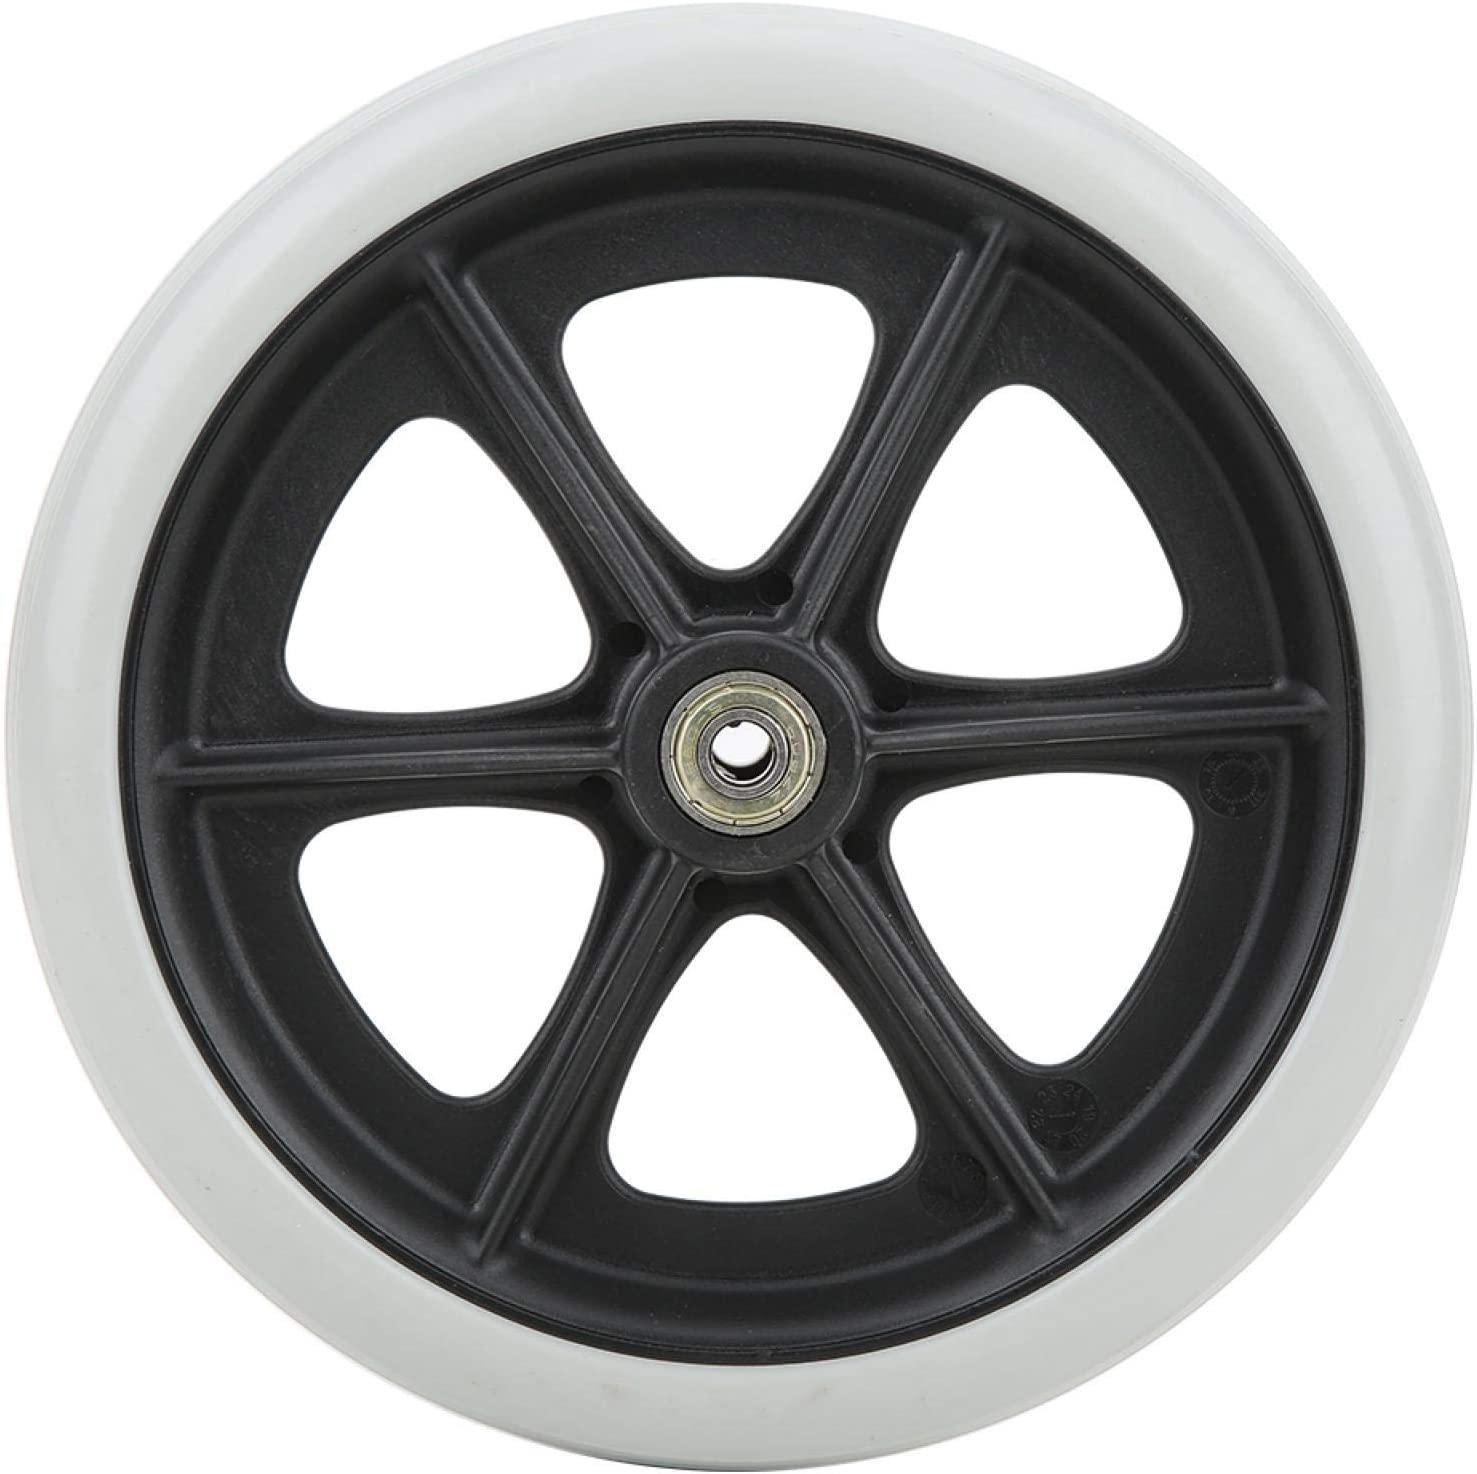 Wheelchair Outlet ☆ Free Shipping Front Castor Wheels Inch 8 Di Fresno Mall